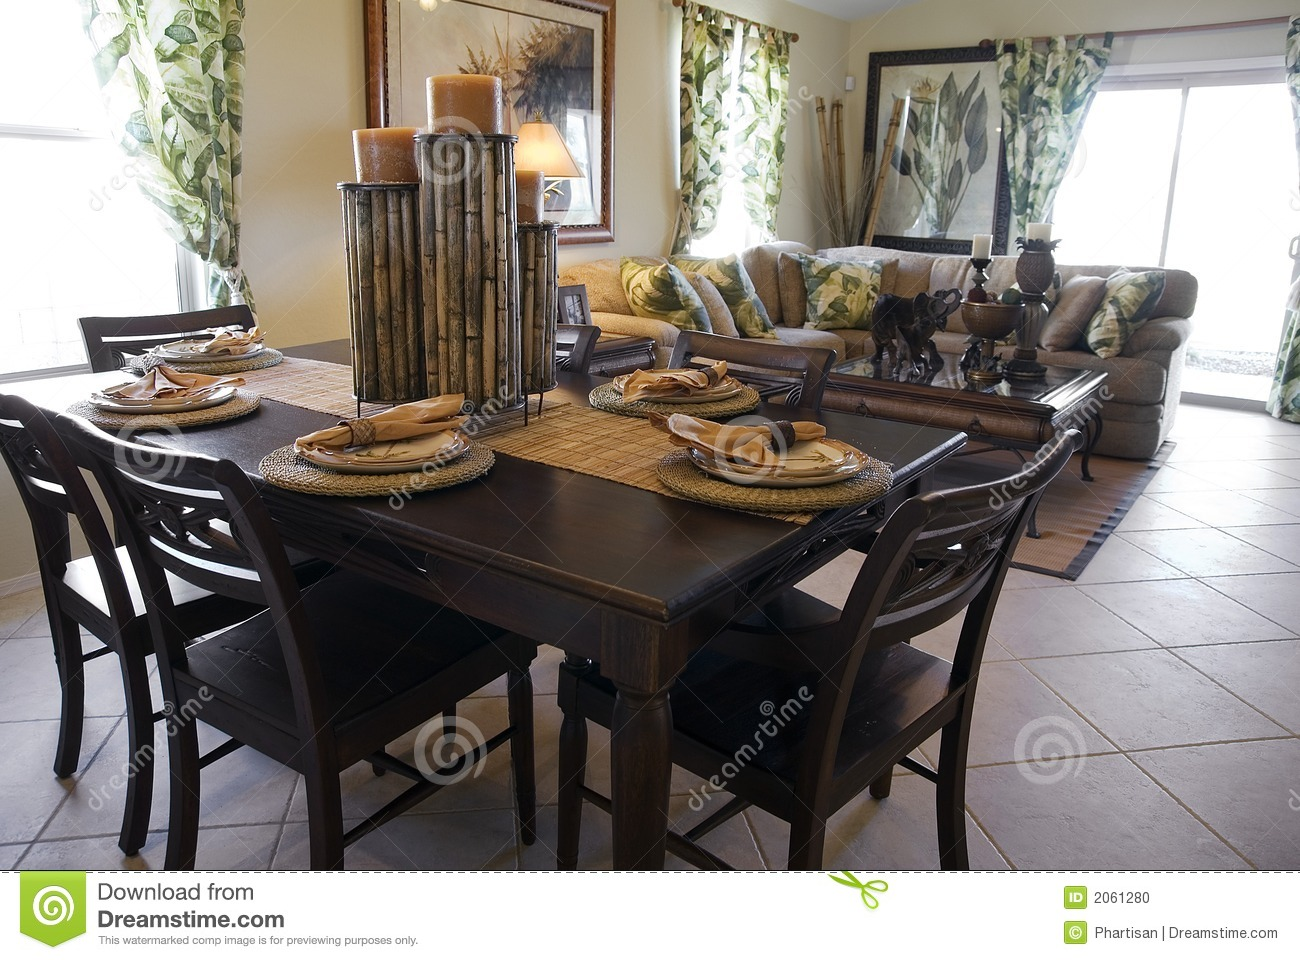 Model home interior design stock photo image of table 2061280 - Model home interior decorating ideas ...